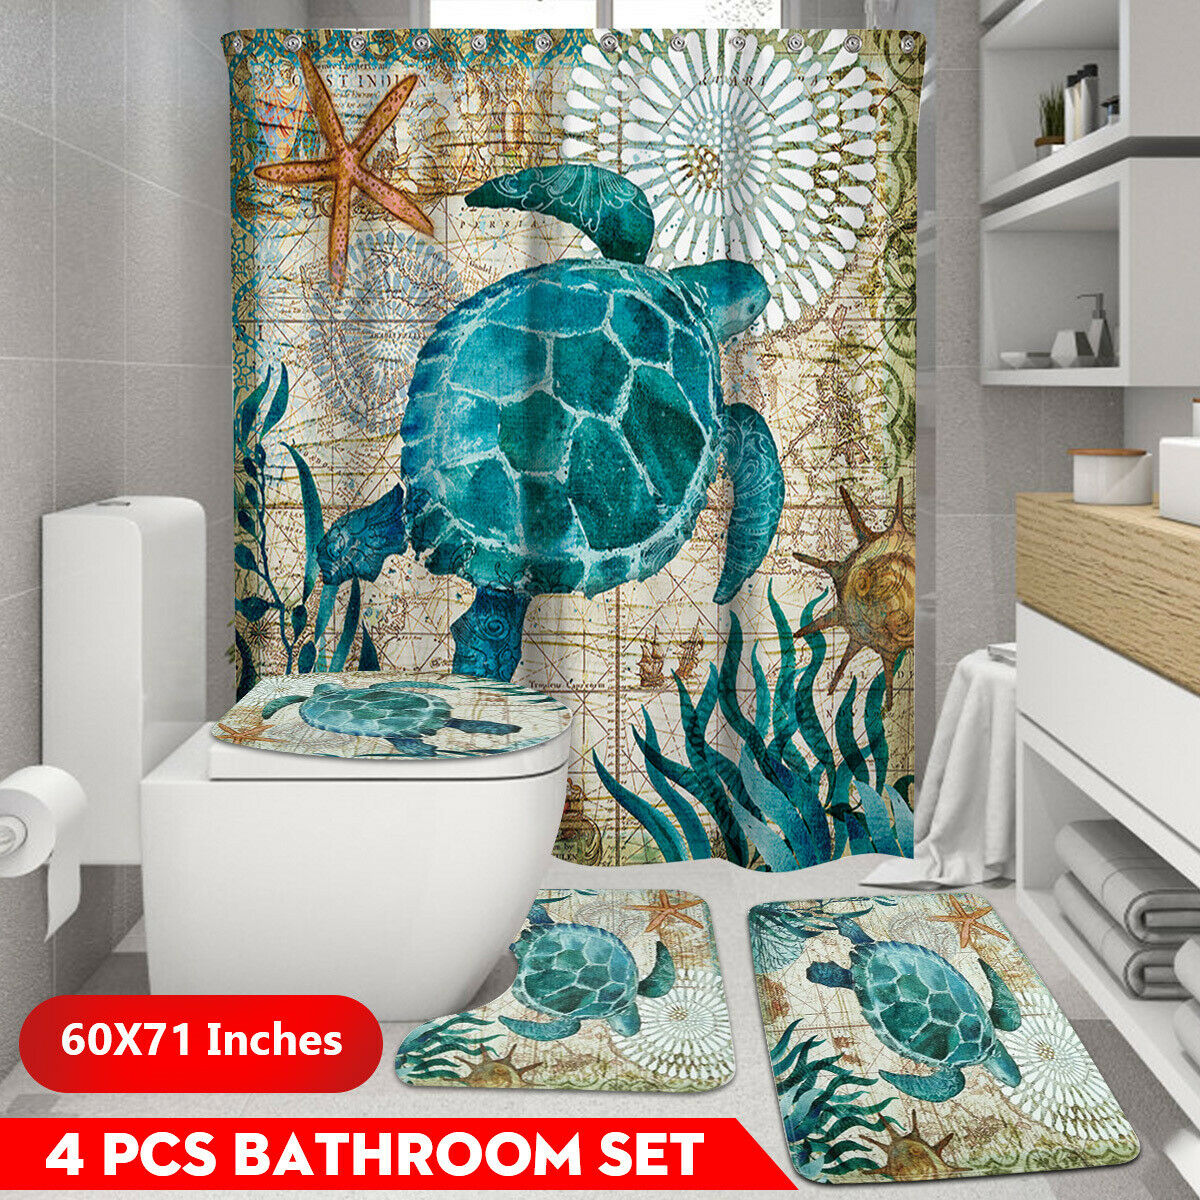 Bath Bathroom Shower Curtain Non Slip